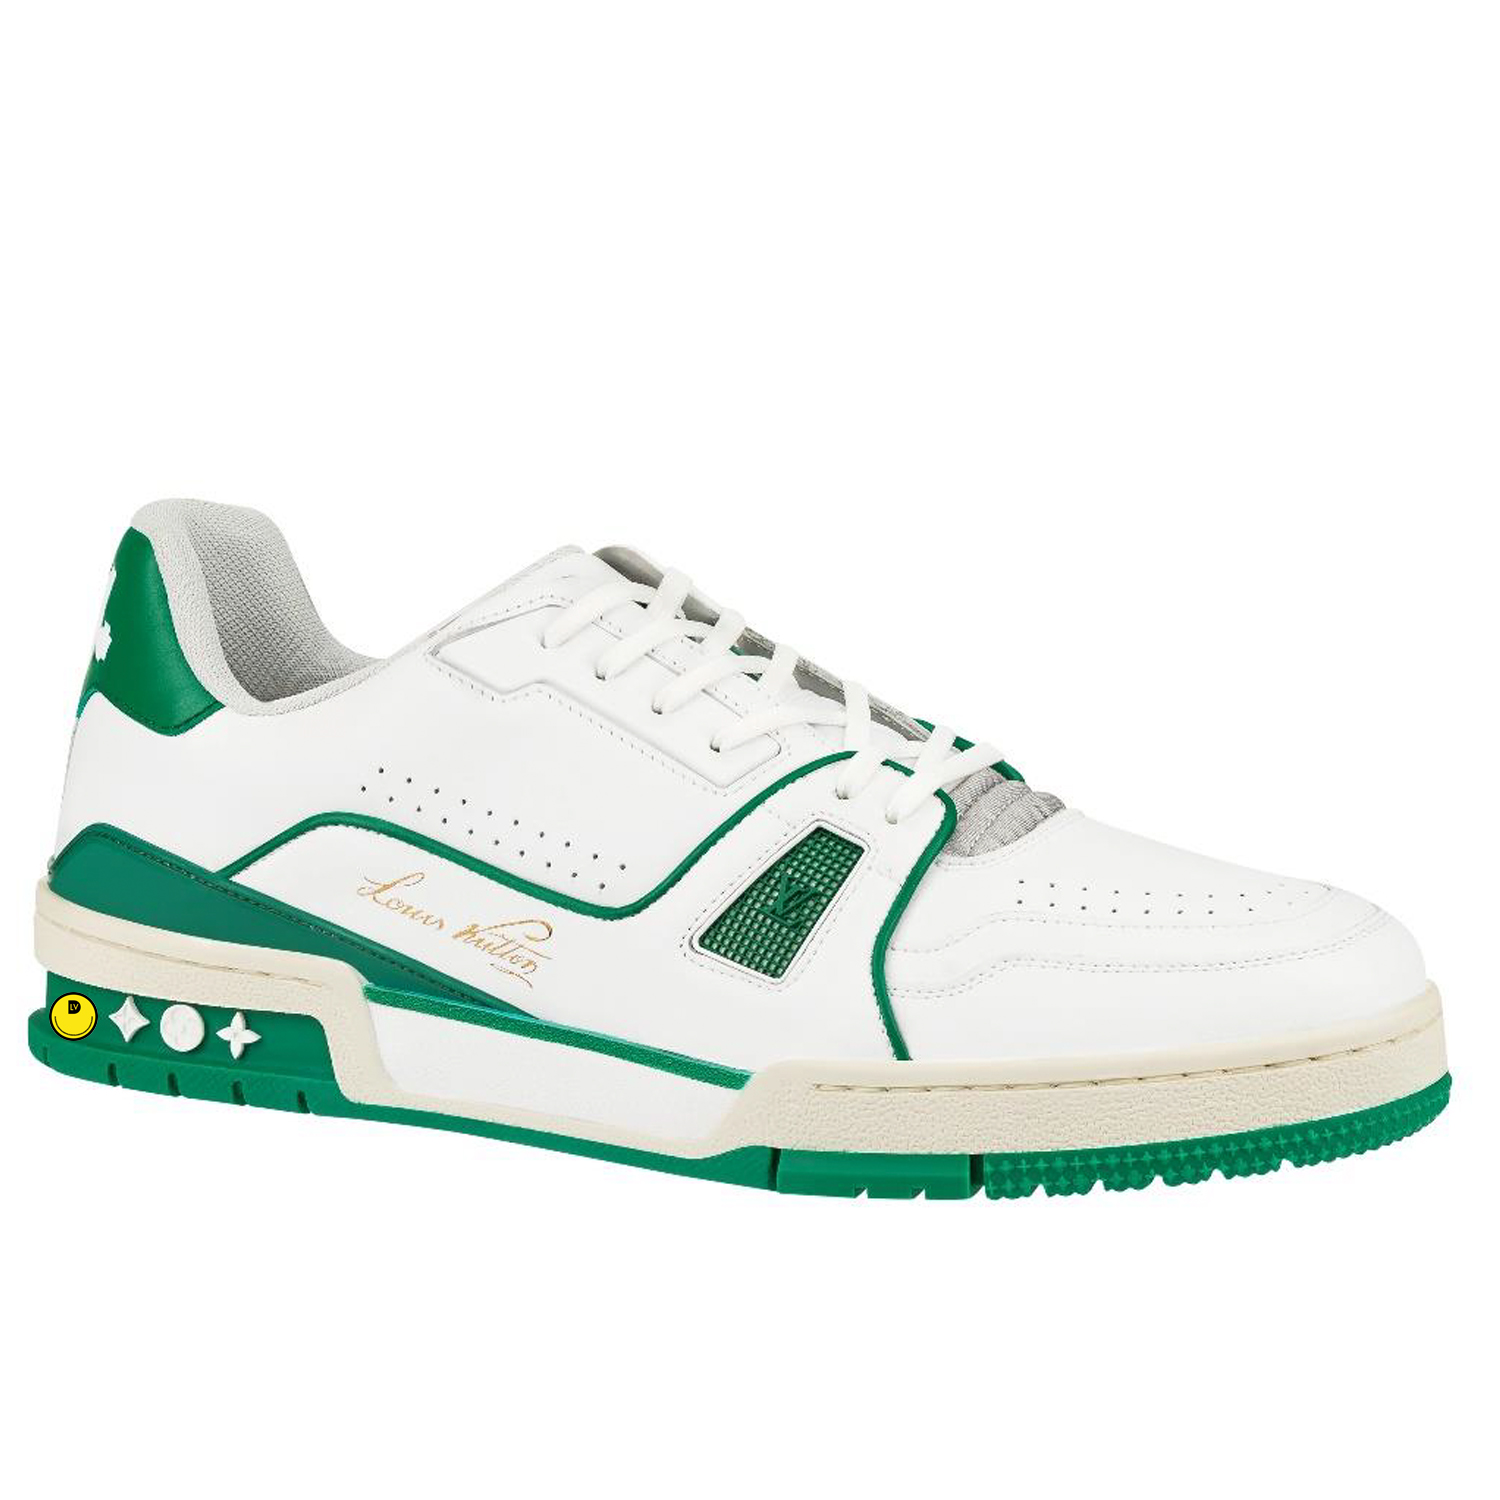 LOW TOP SNEAKER - €890 $12001A54HLVERT